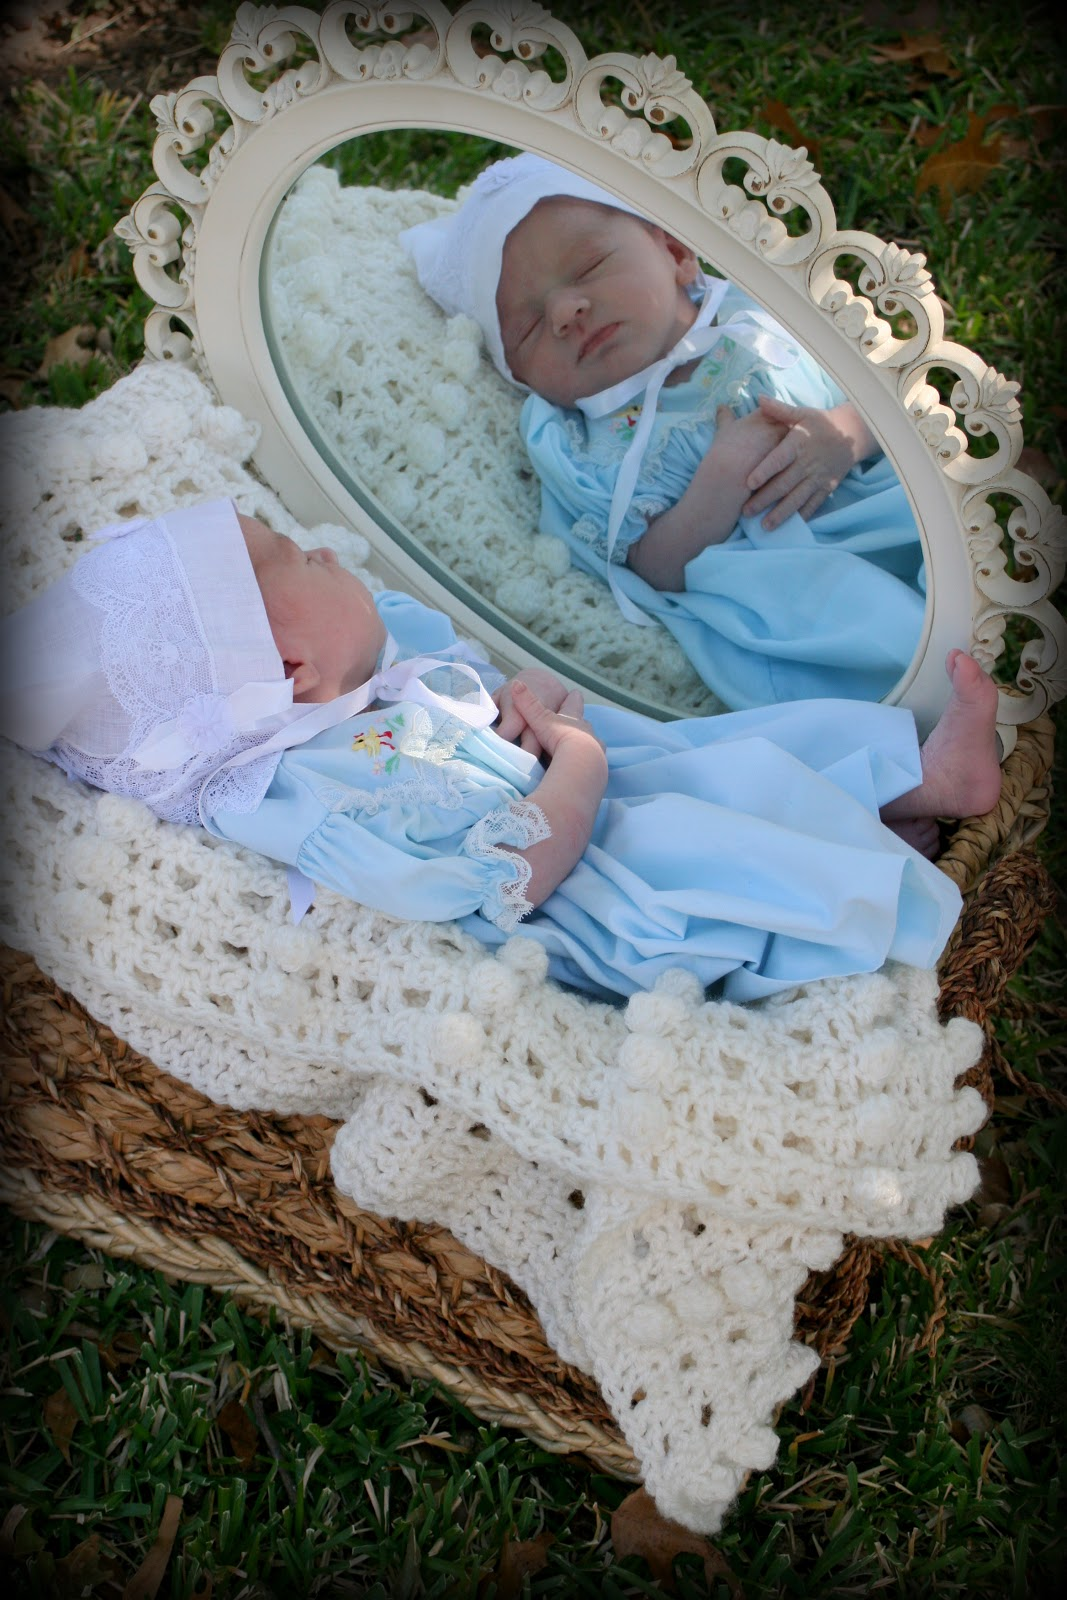 Greene acres hobby farm newborn photo ideas tips and tricks